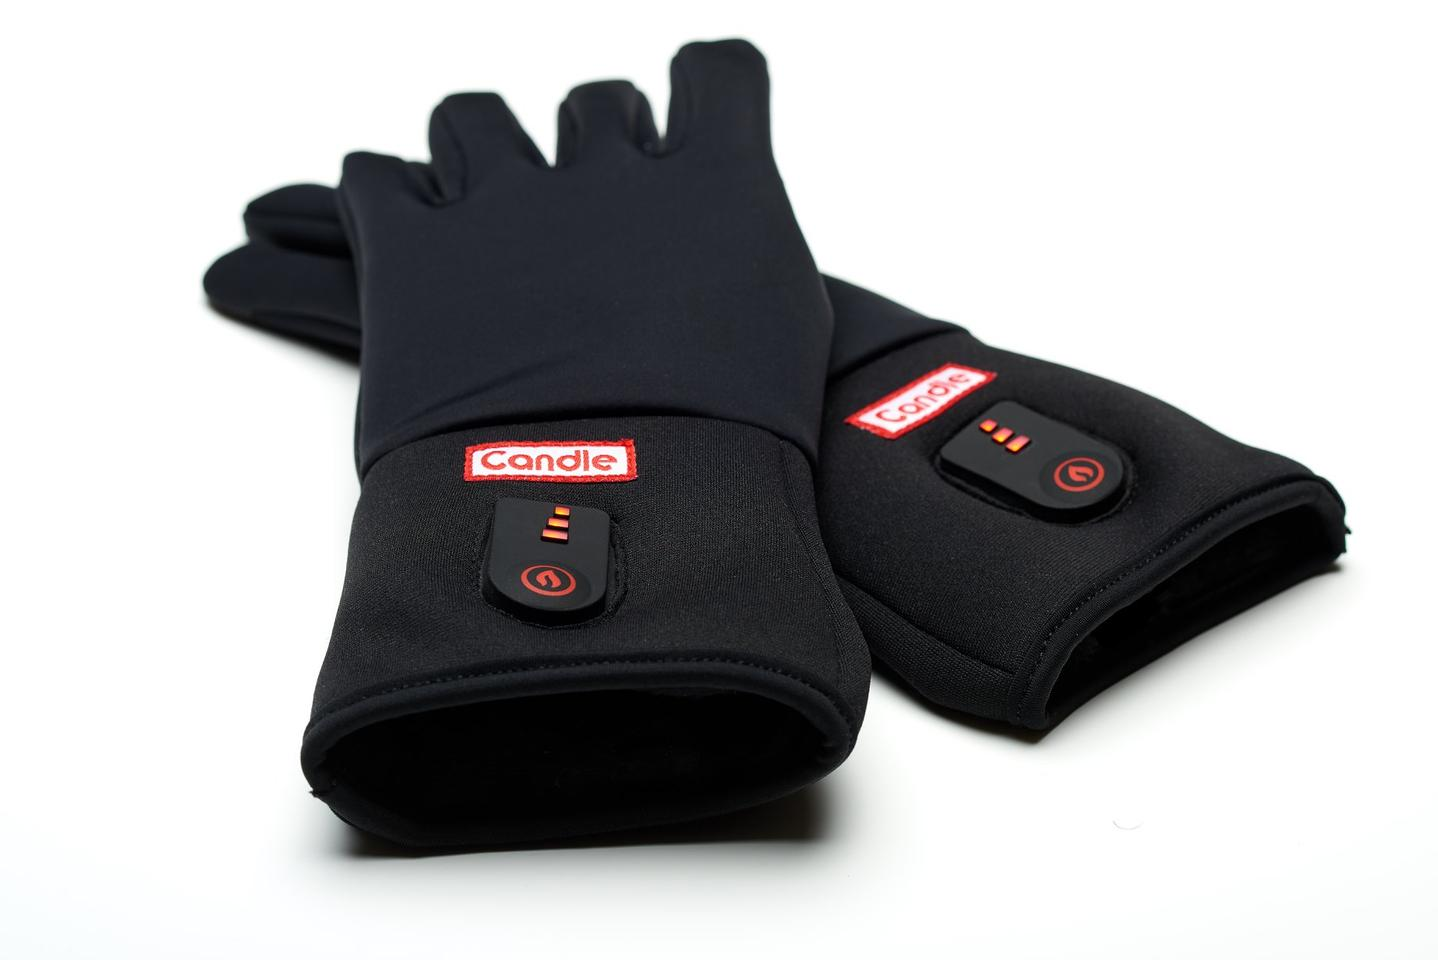 Candle gloves are presently being crowdfunded on Indiegogo